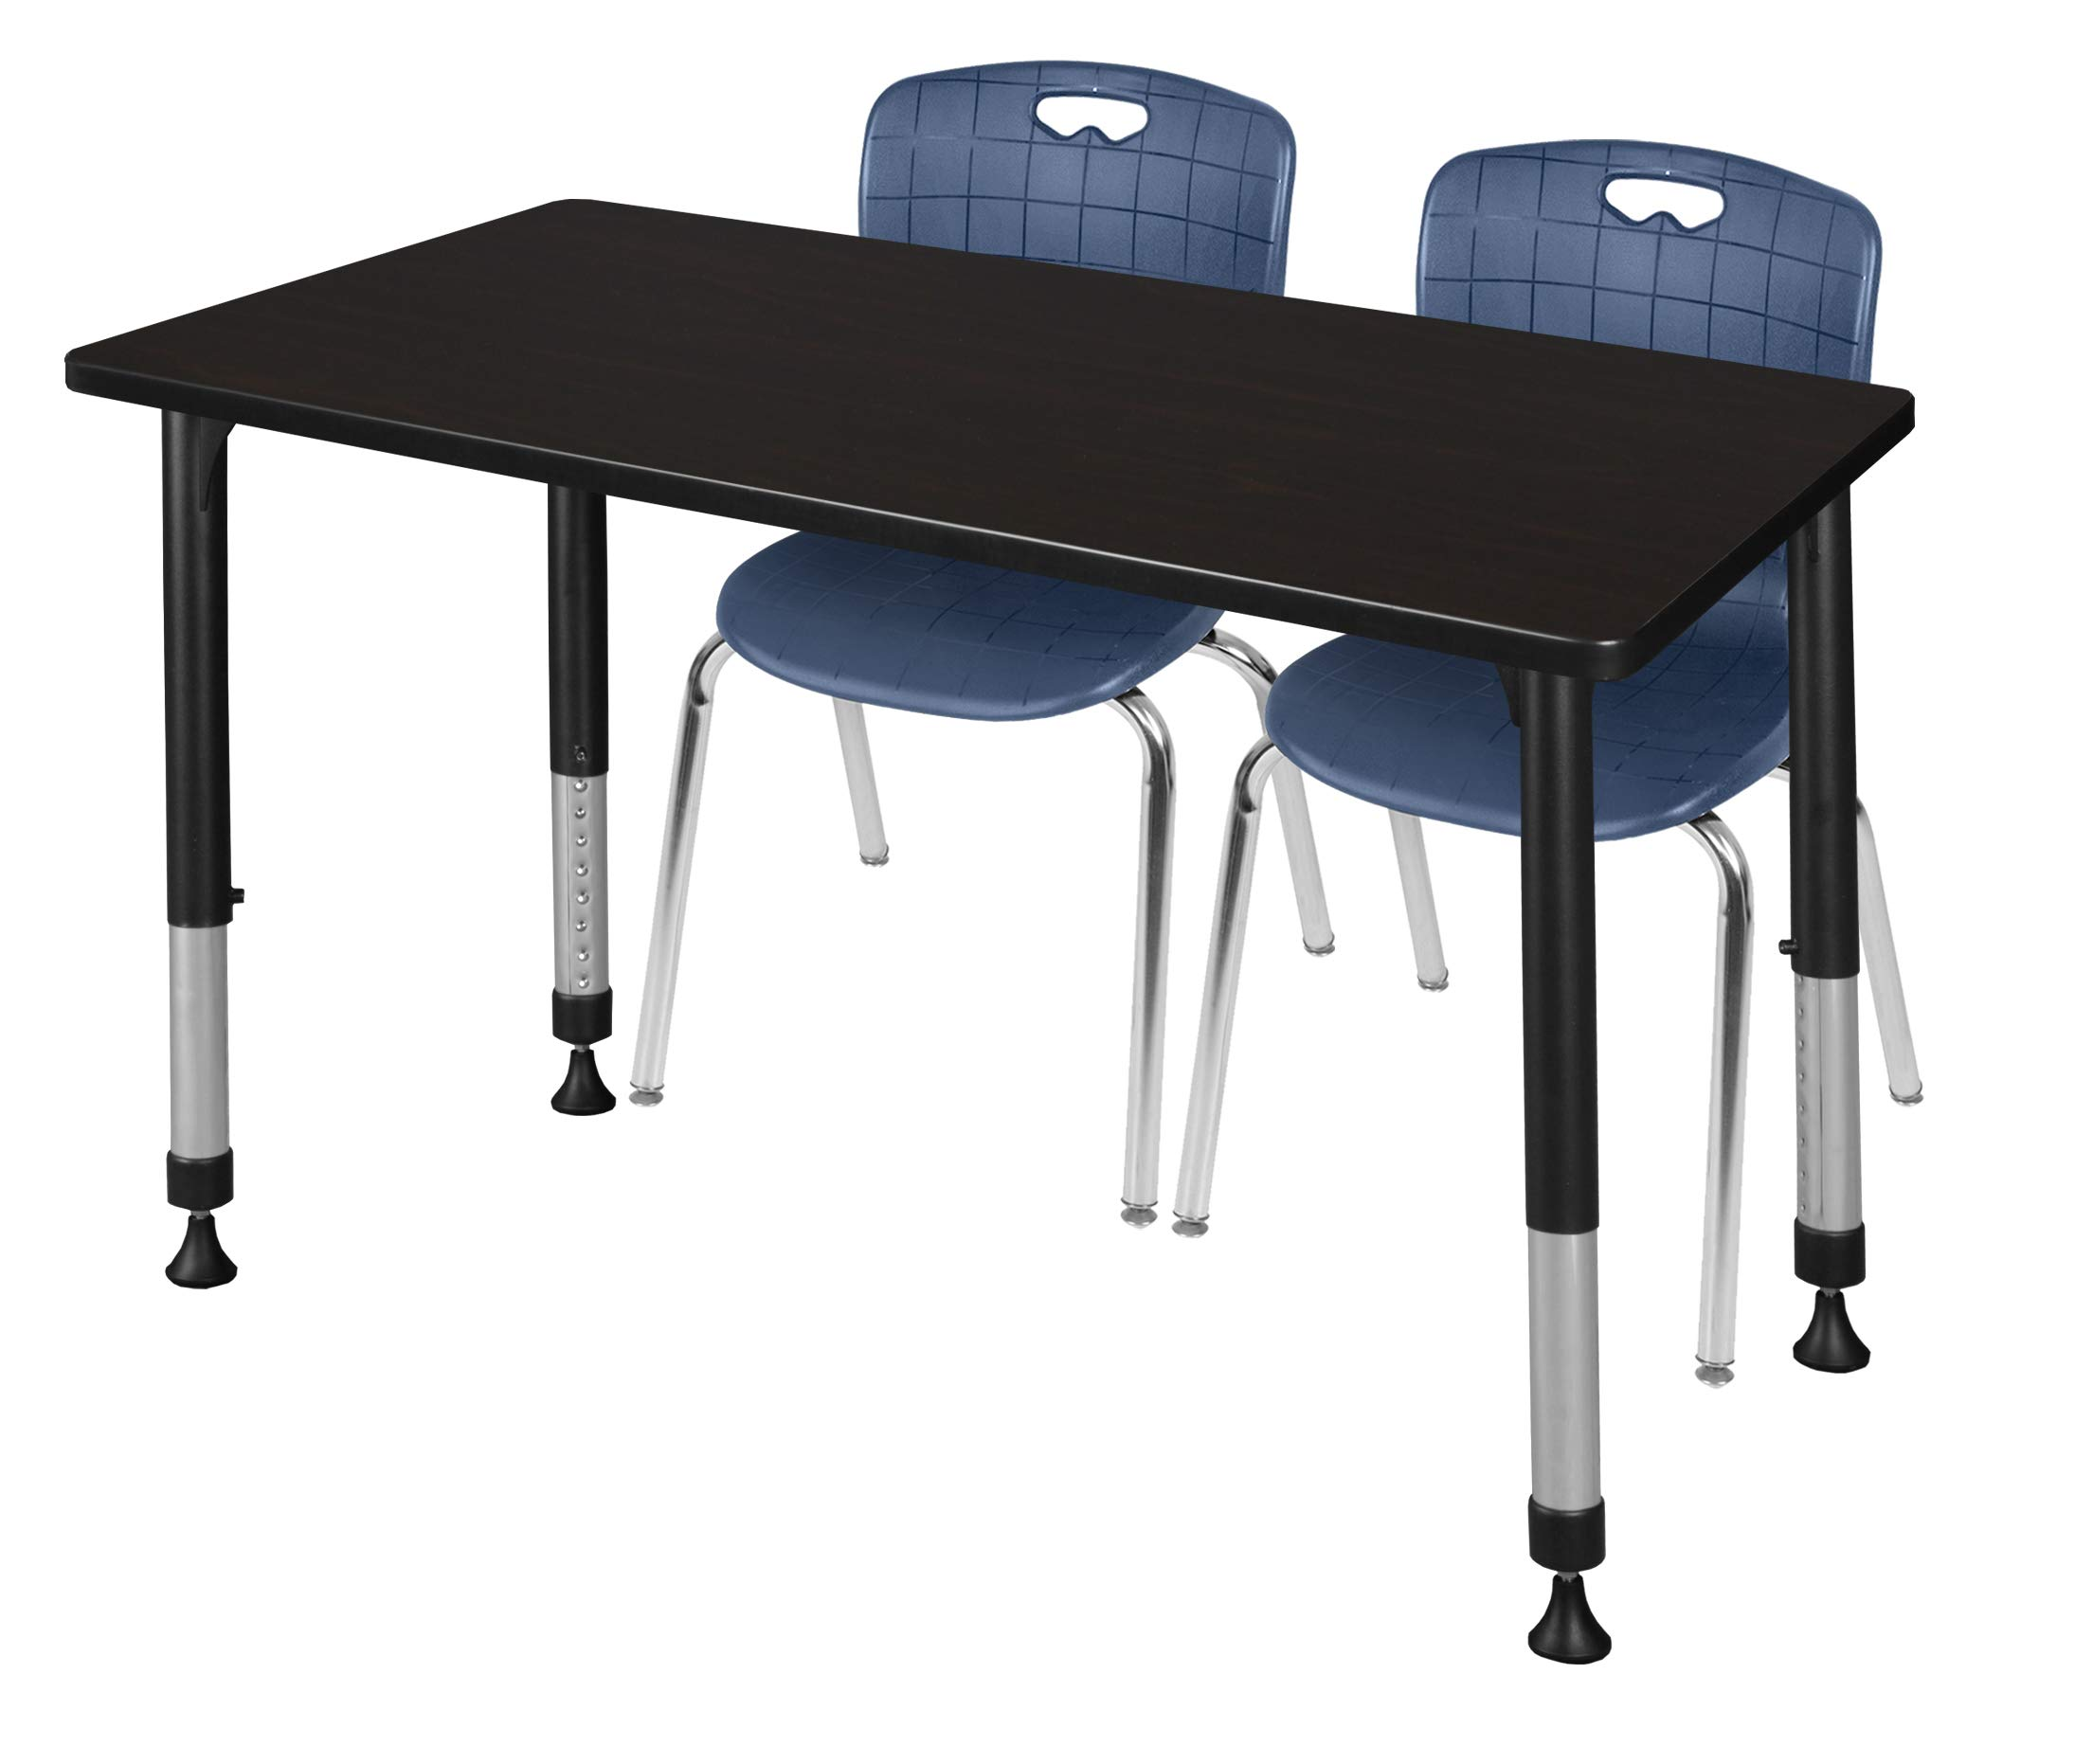 Regency MT4824MWAPBK40NV Kee Height Adjustable Classroom Table Set with Two 18'' Andy Chairs 48'' x 24'' Mocha Walnut/Navy Blue